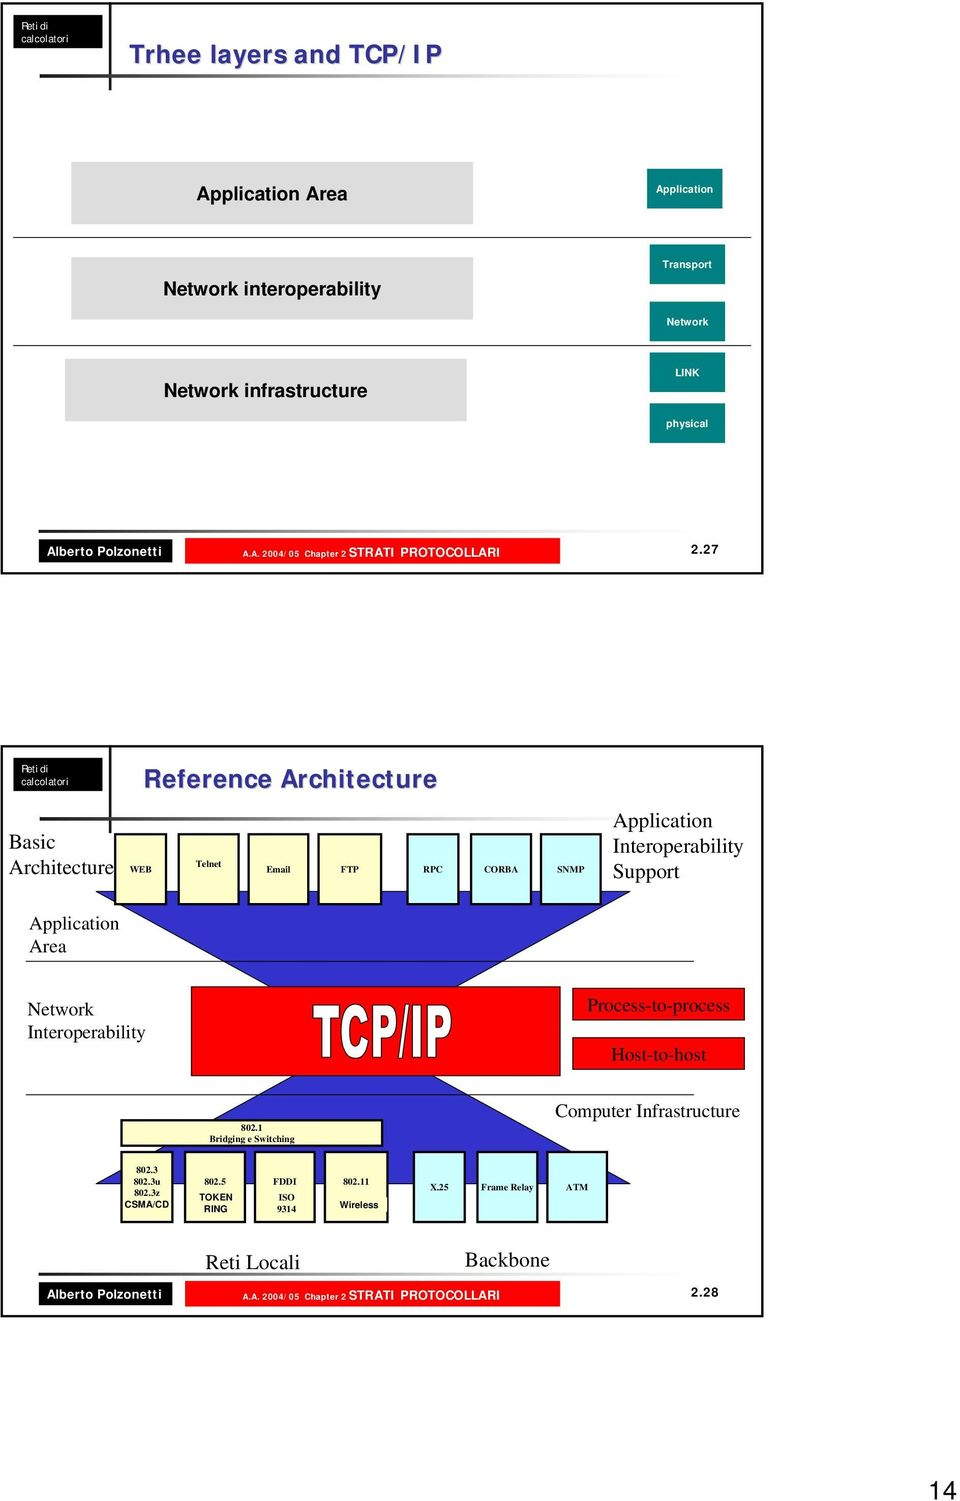 Interoperability Process-to-process Host-to-host 802.1 Bridging e Switching Computer Infrastructure 802.3 802.3u 802.3z CSMA/CD 802.5 FDDI 802.